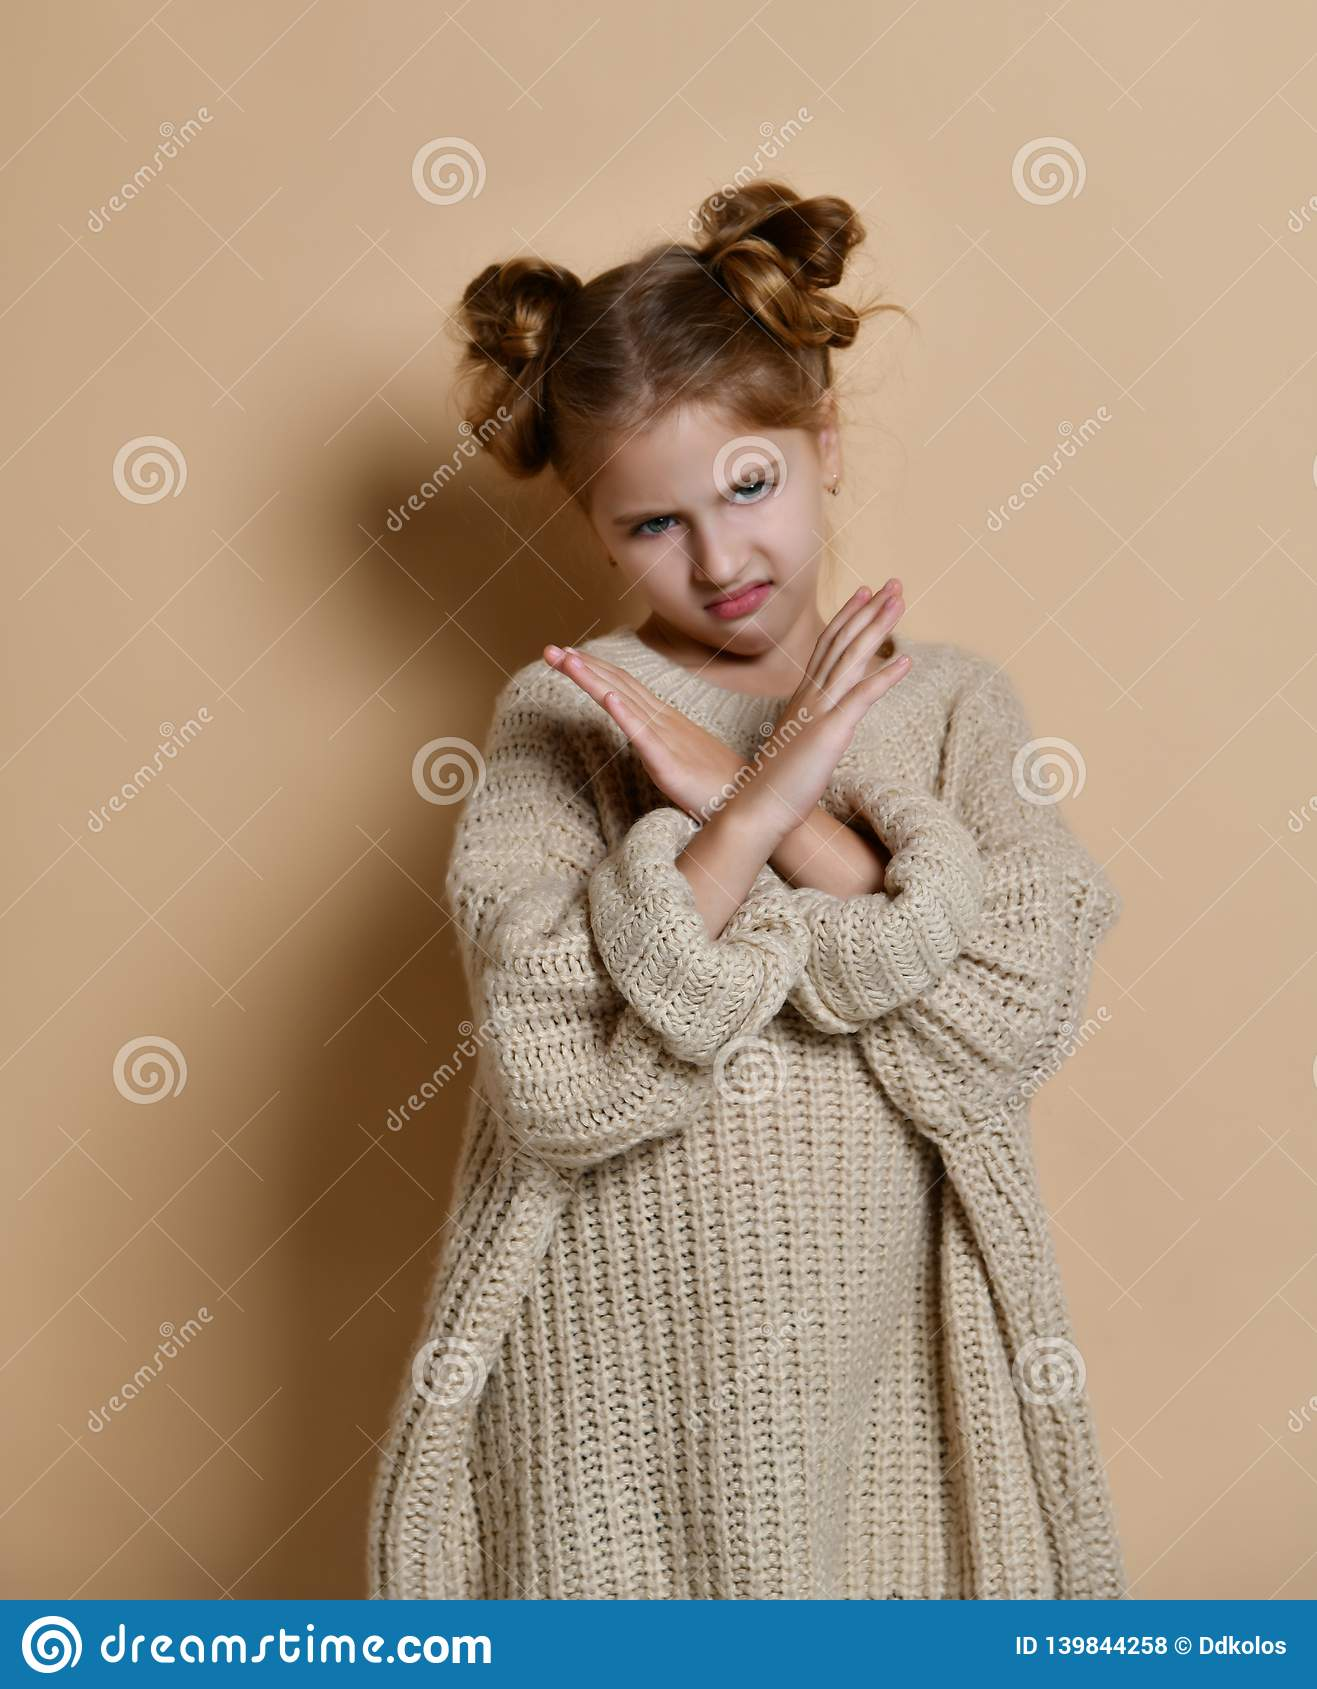 Portrait of serious, unhappy kid girl holding two arms crossed, gesturing no sign, looking away camera